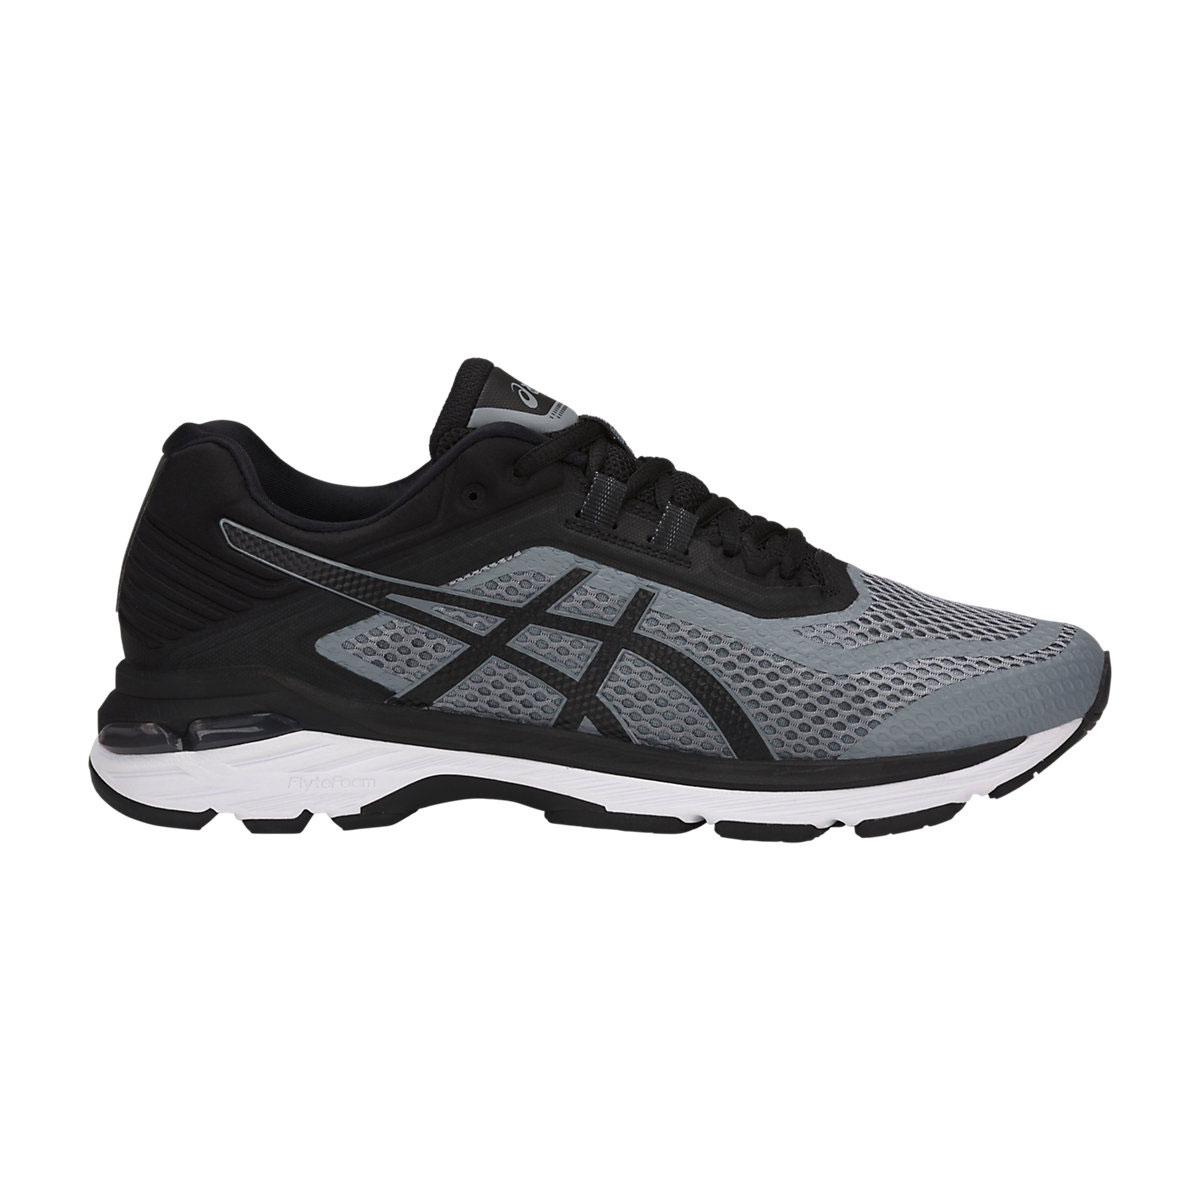 Asics GT-2000 6 M - Stone Grey / Black / White